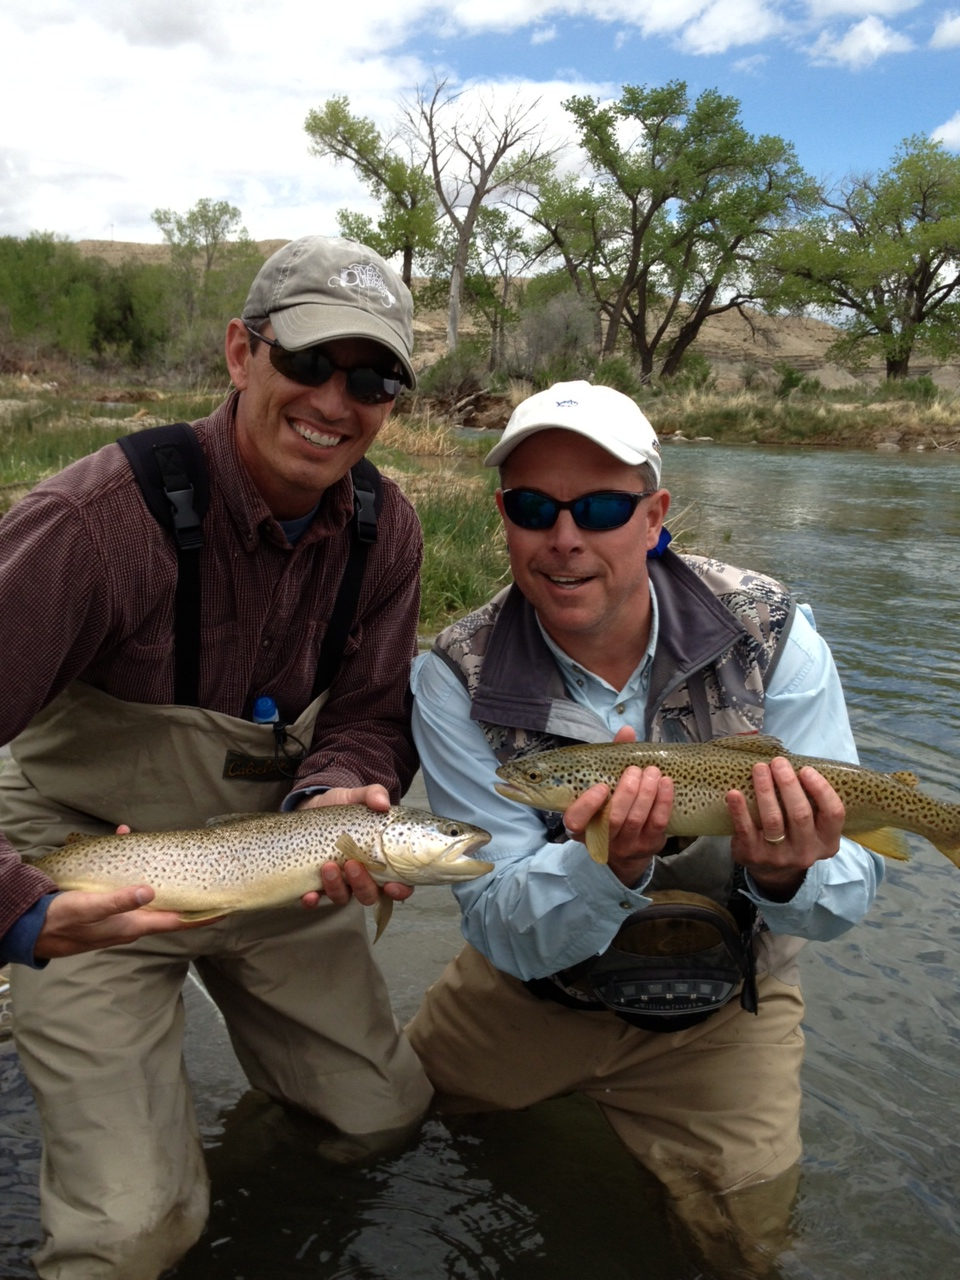 Brandon and Tommy with a nice double hook up on one of our rivers x streams!